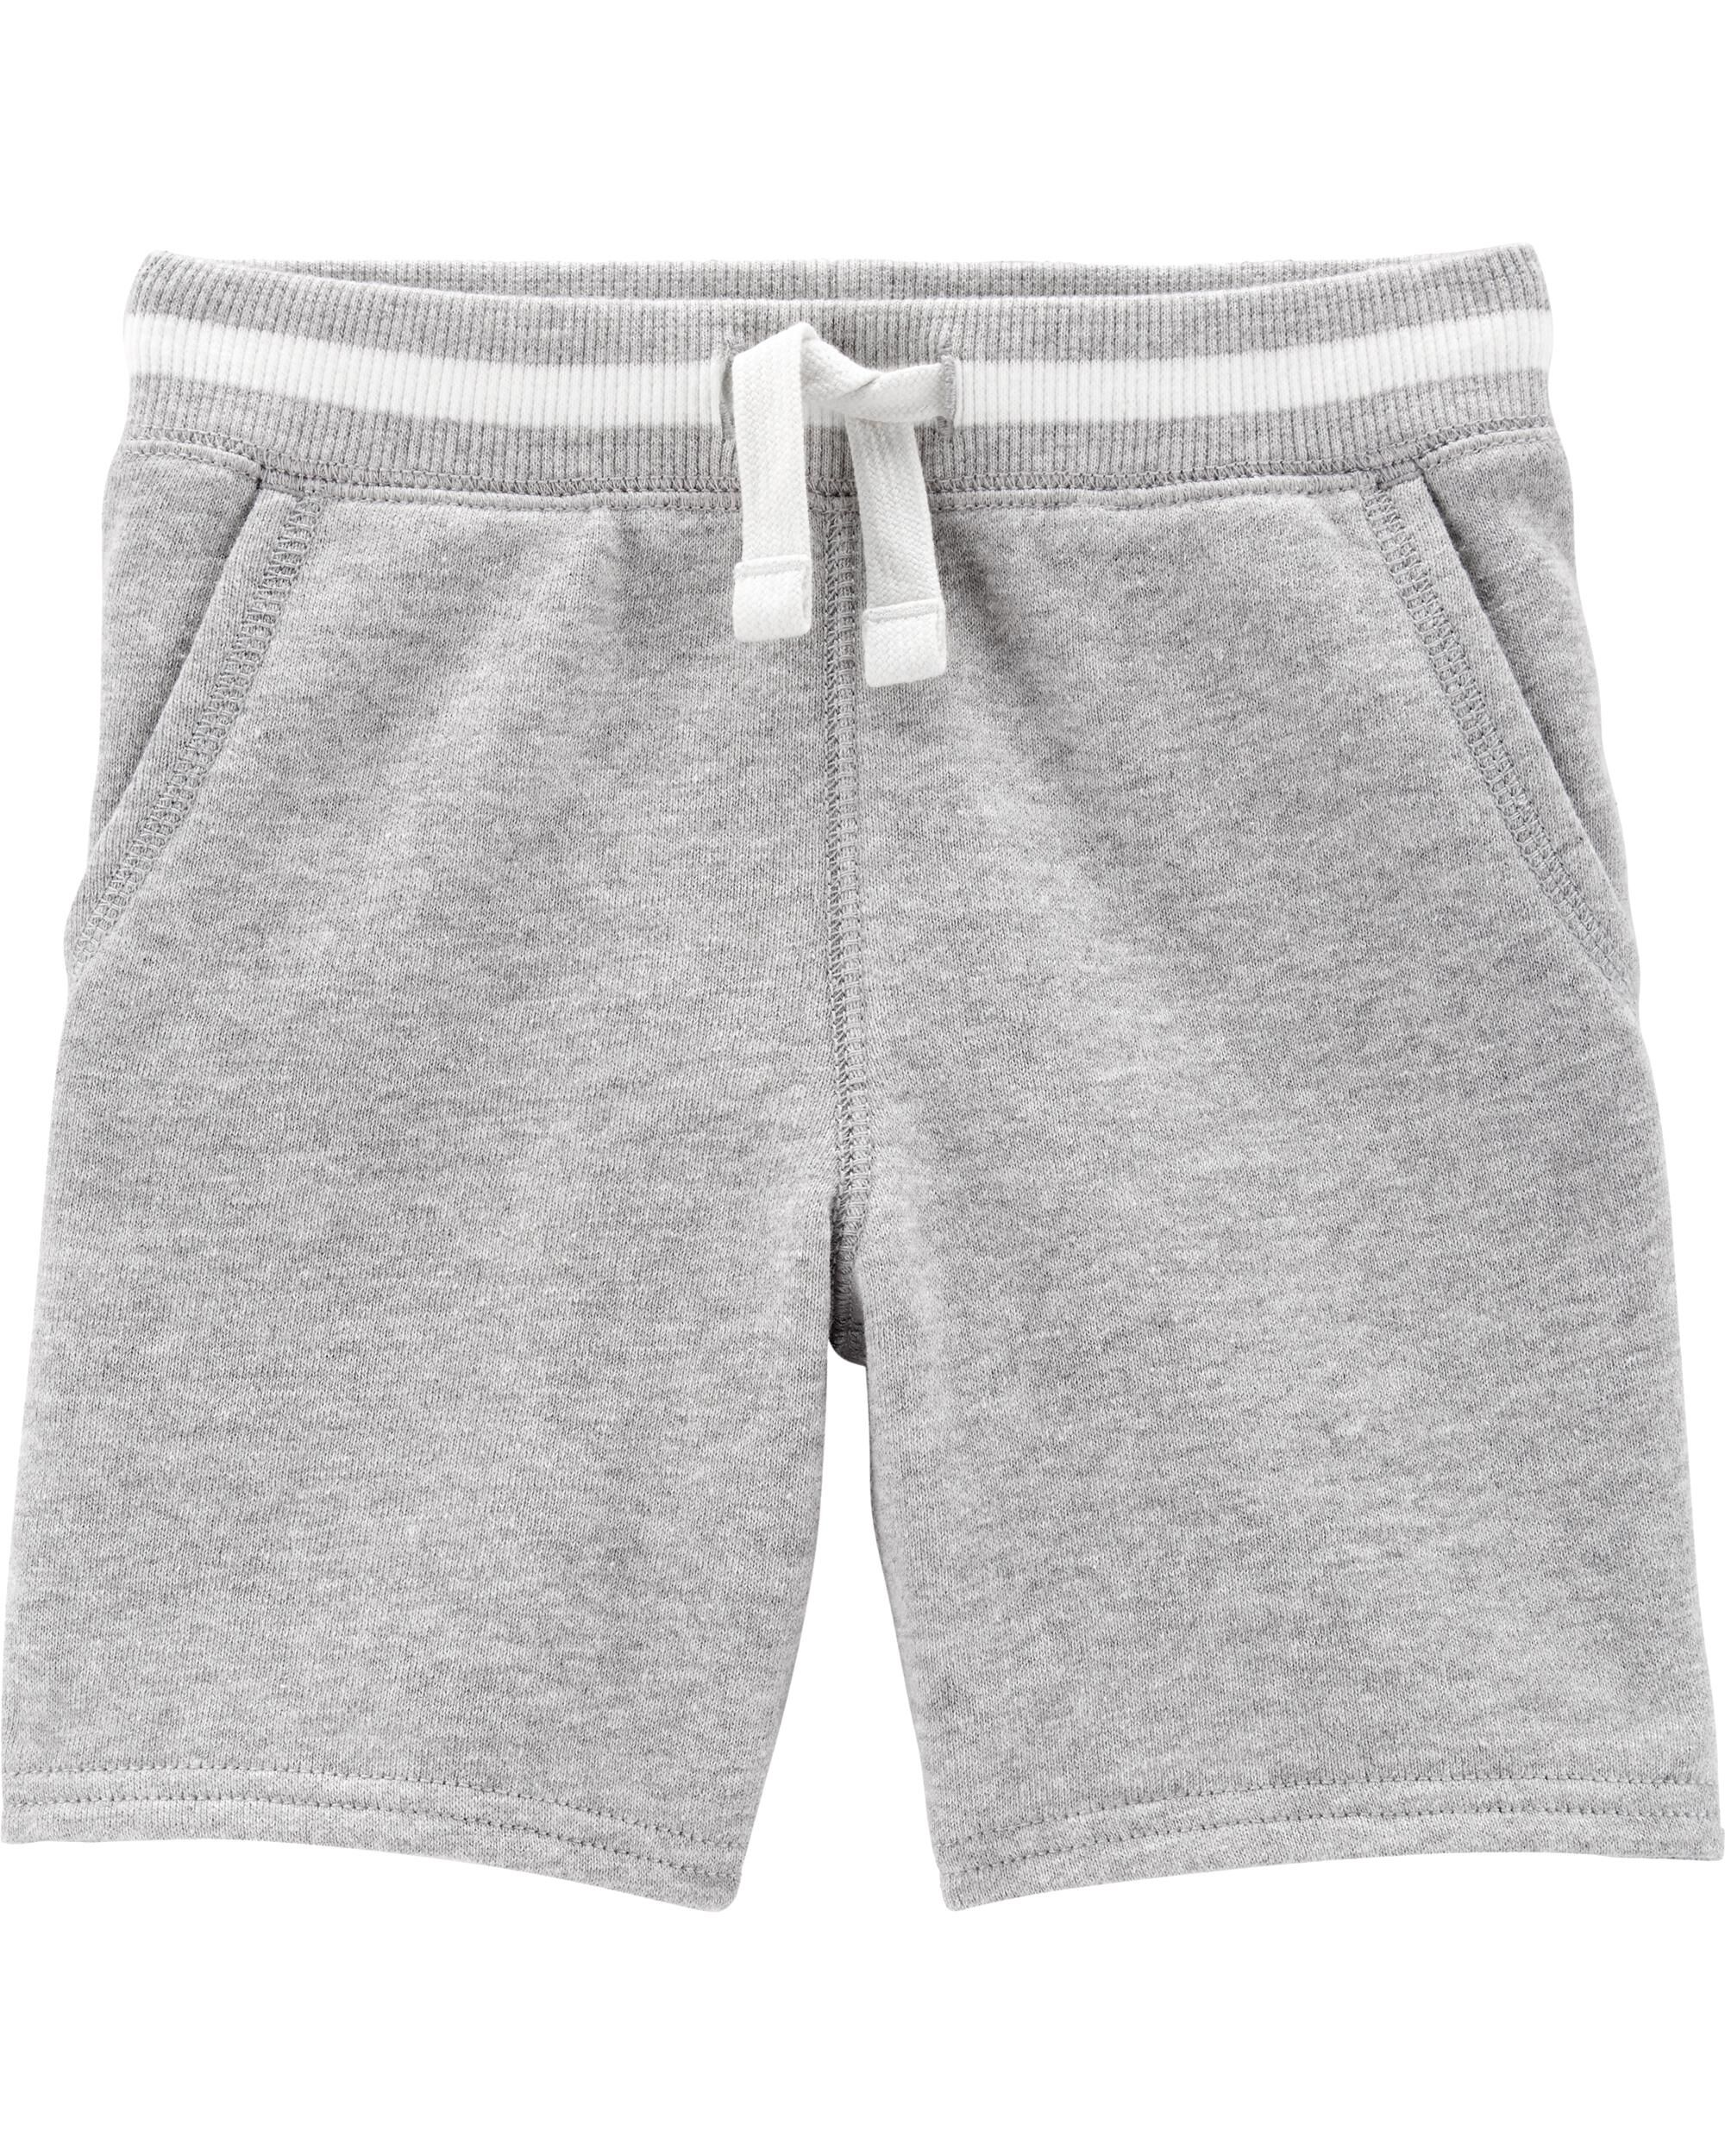 *Clearance*  Pull-On French Terry Shorts